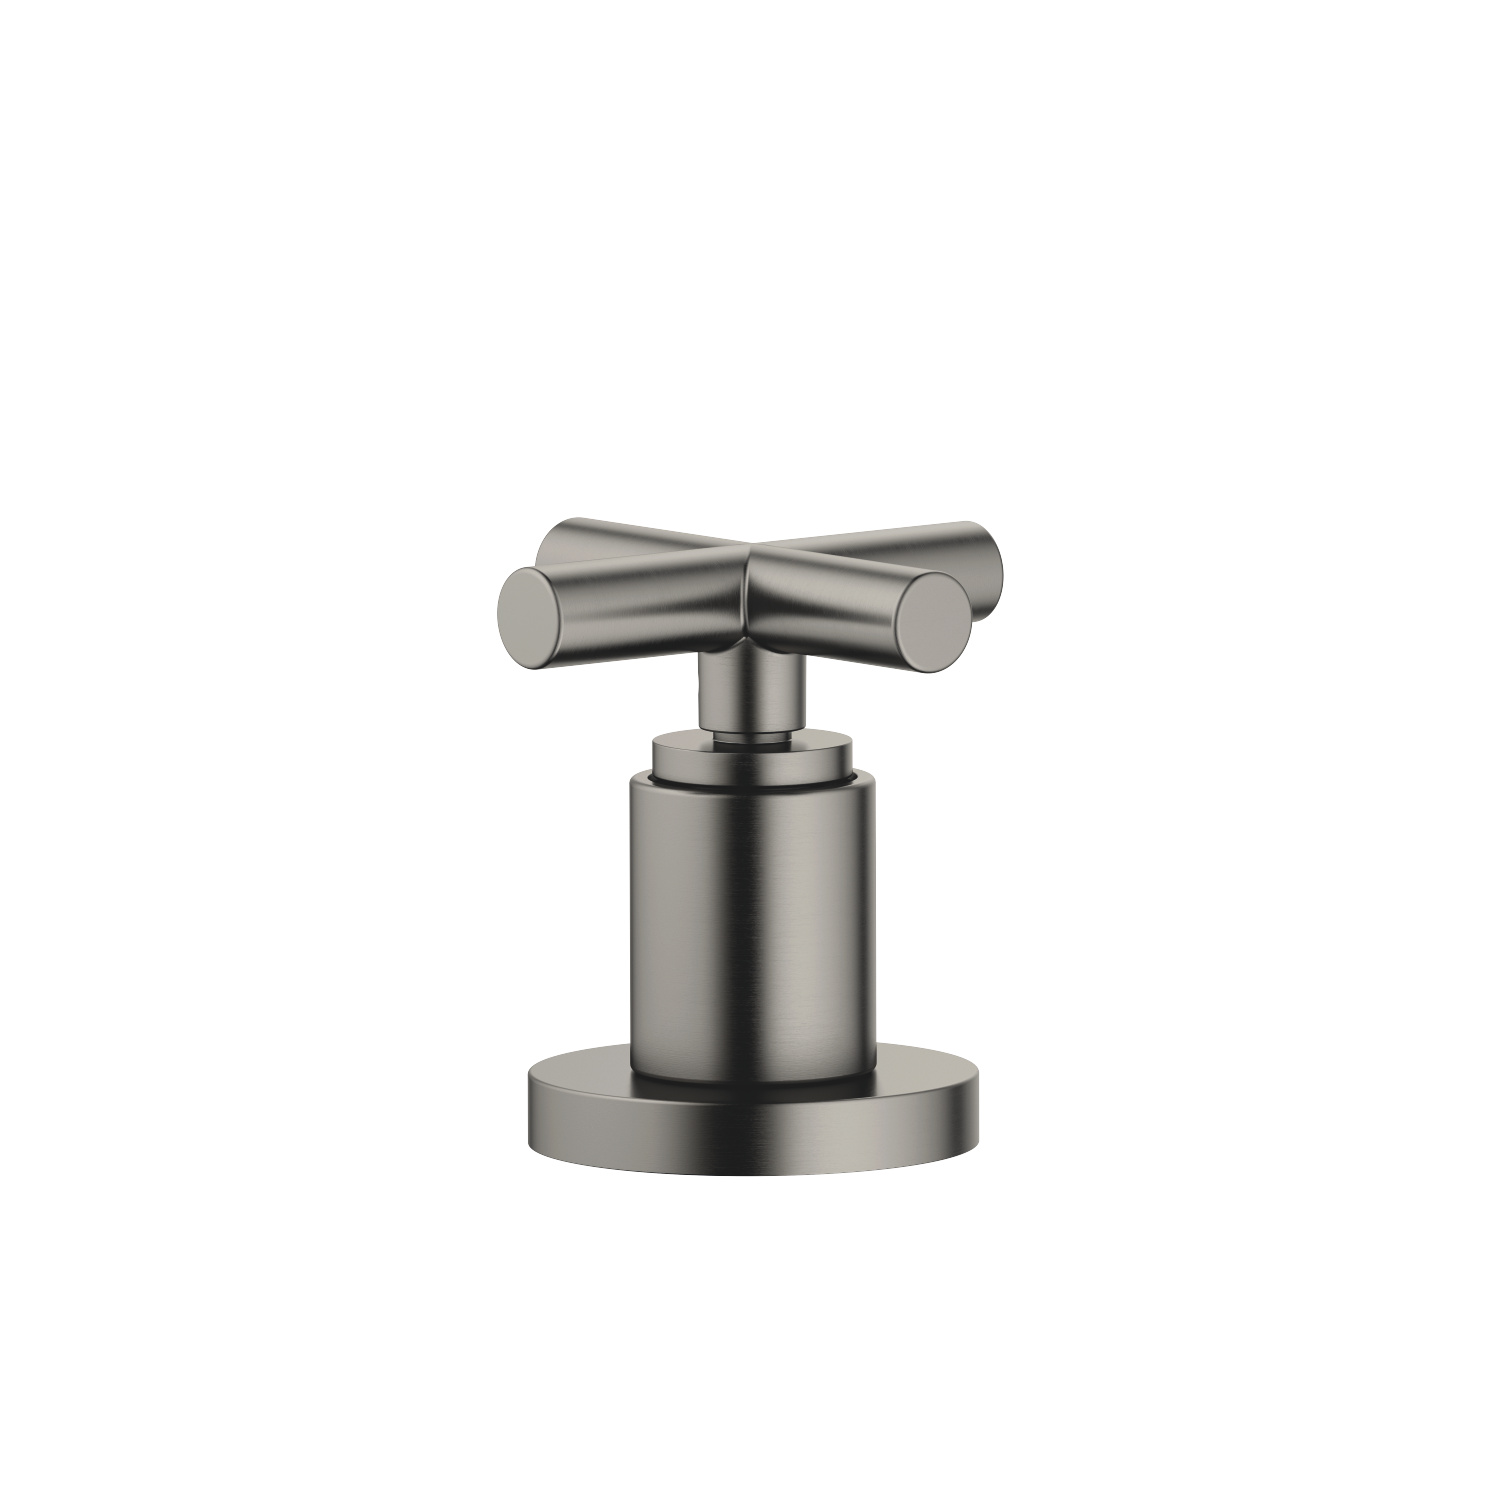 Two-way diverter for bath rim or tile edge installation - Dark Platinum matt